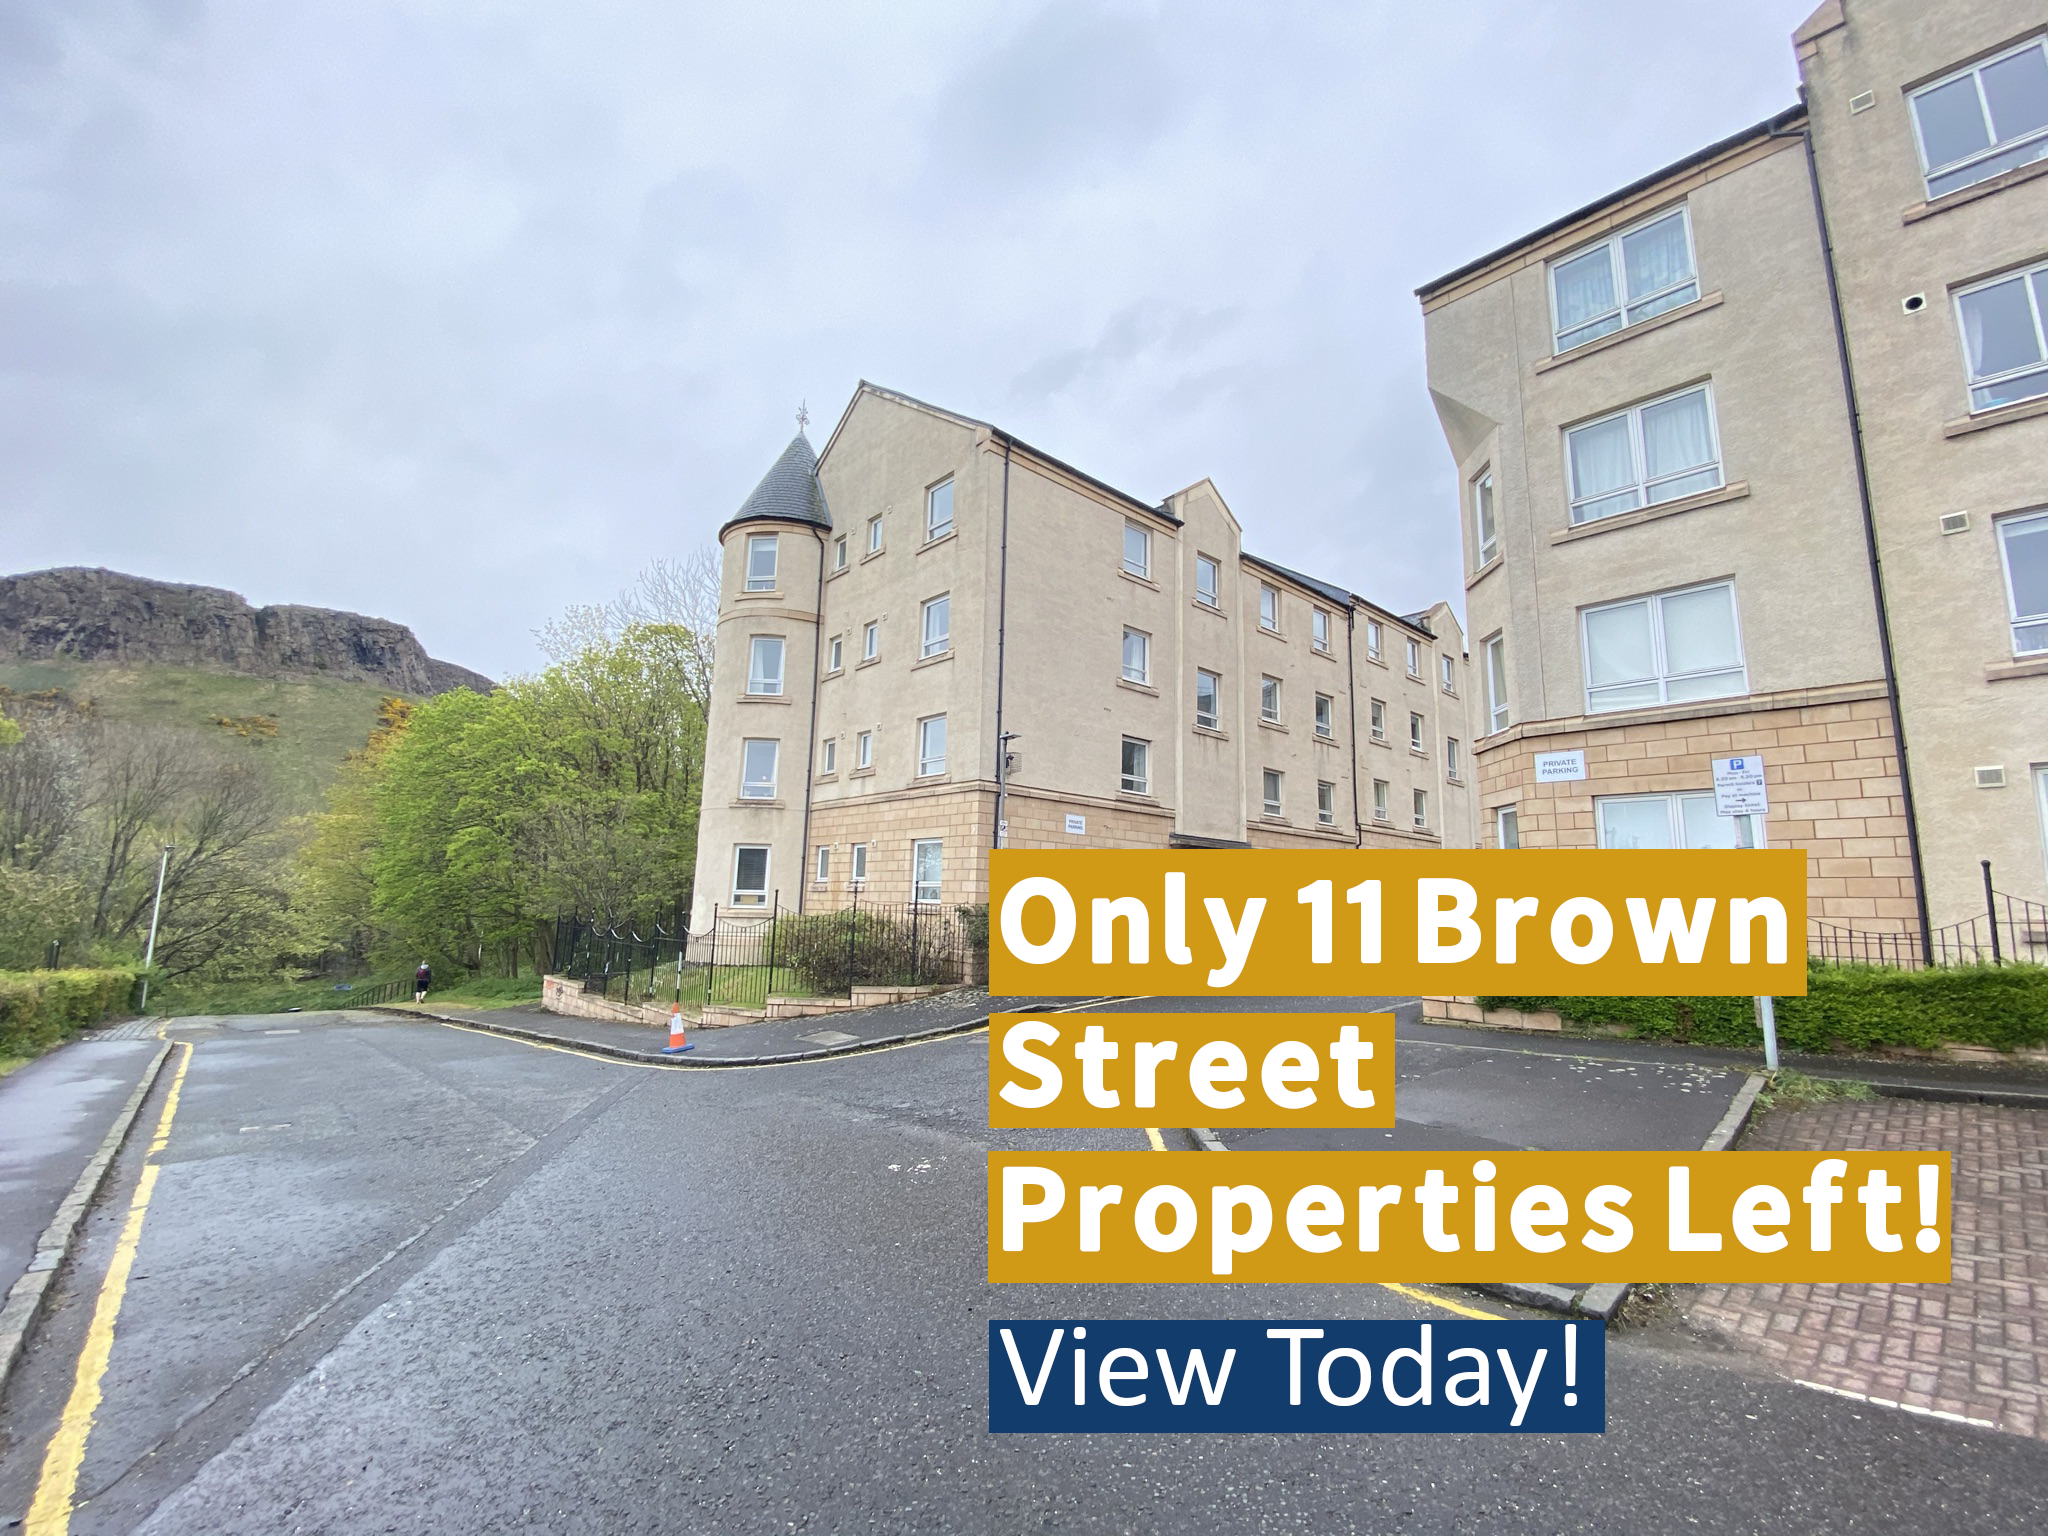 Attention - Only 11 Brown Street Properties Left!